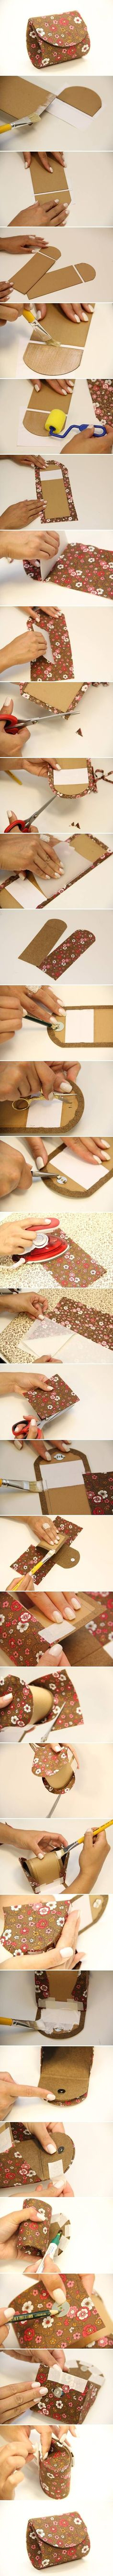 DIY Money Pouch crafts craft ideas easy crafts diy ideas diy crafts easy diy fun diy diy fashion craft fashion fashion diy craft purse craft hand bag diy bag by Easy Diy Crafts, Fun Diy, Teen Crafts, Handmade Bags, Diy Fashion, Sewing Projects, Diy Projects, Sewing Tutorials, Creations